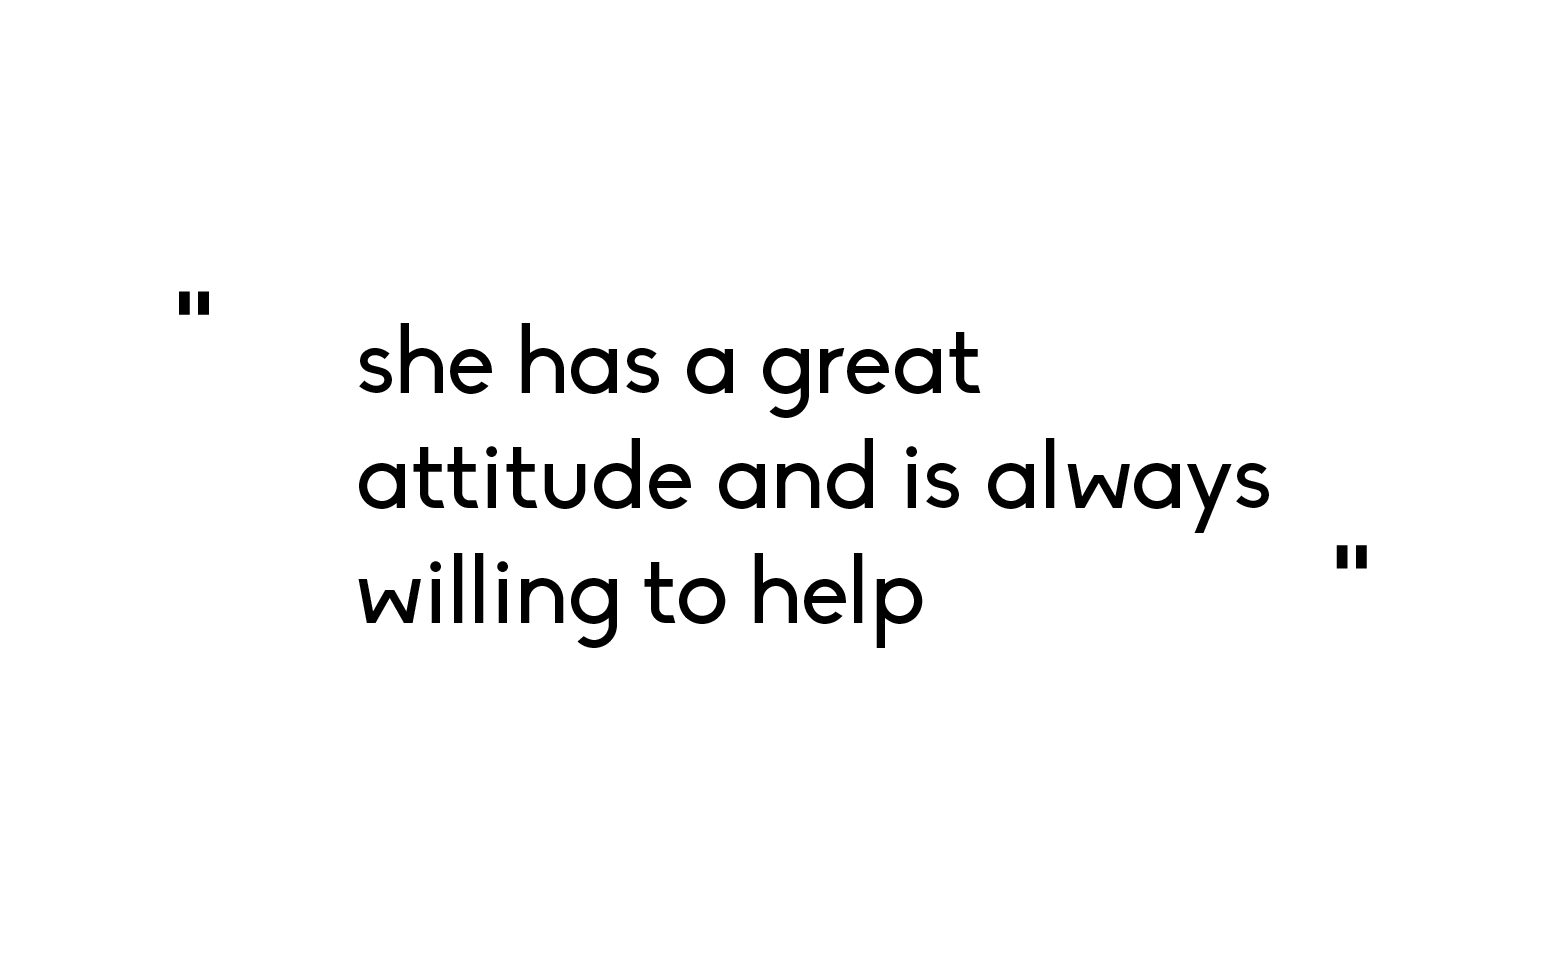 she has a great attitude and is always willing to help